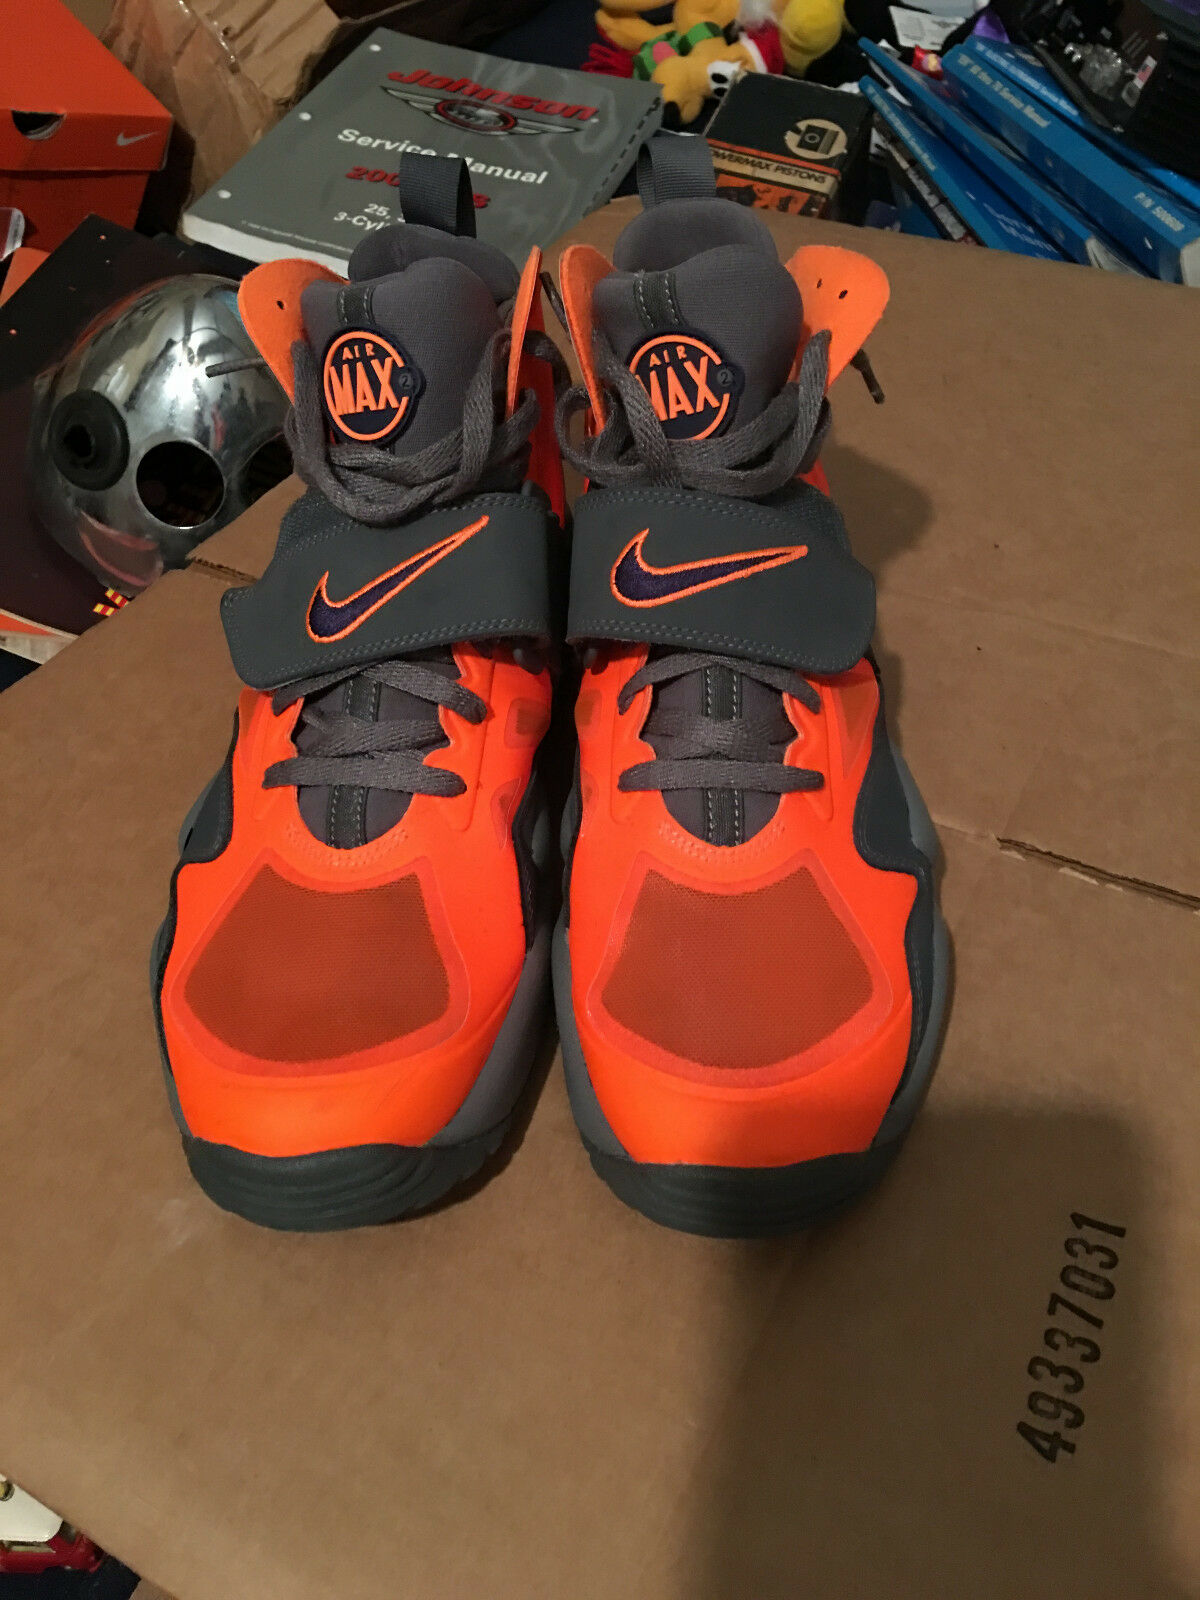 Nike Air Max Size 12 Express shoes Total Orange/Imperial Purple/Gray 525224-800